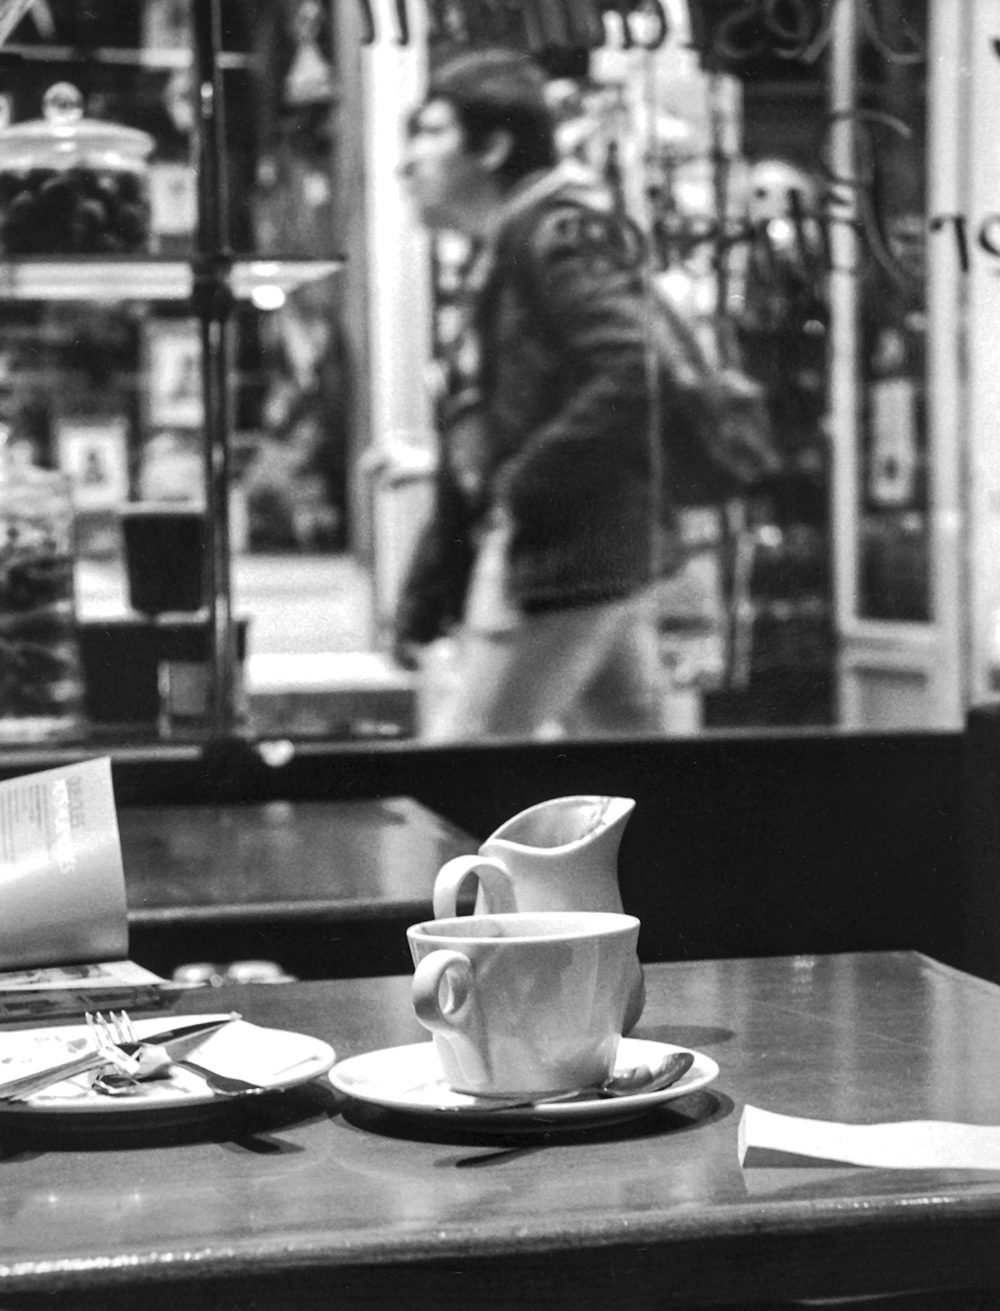 Coffee in Le Valentin  Passage Jouffroy